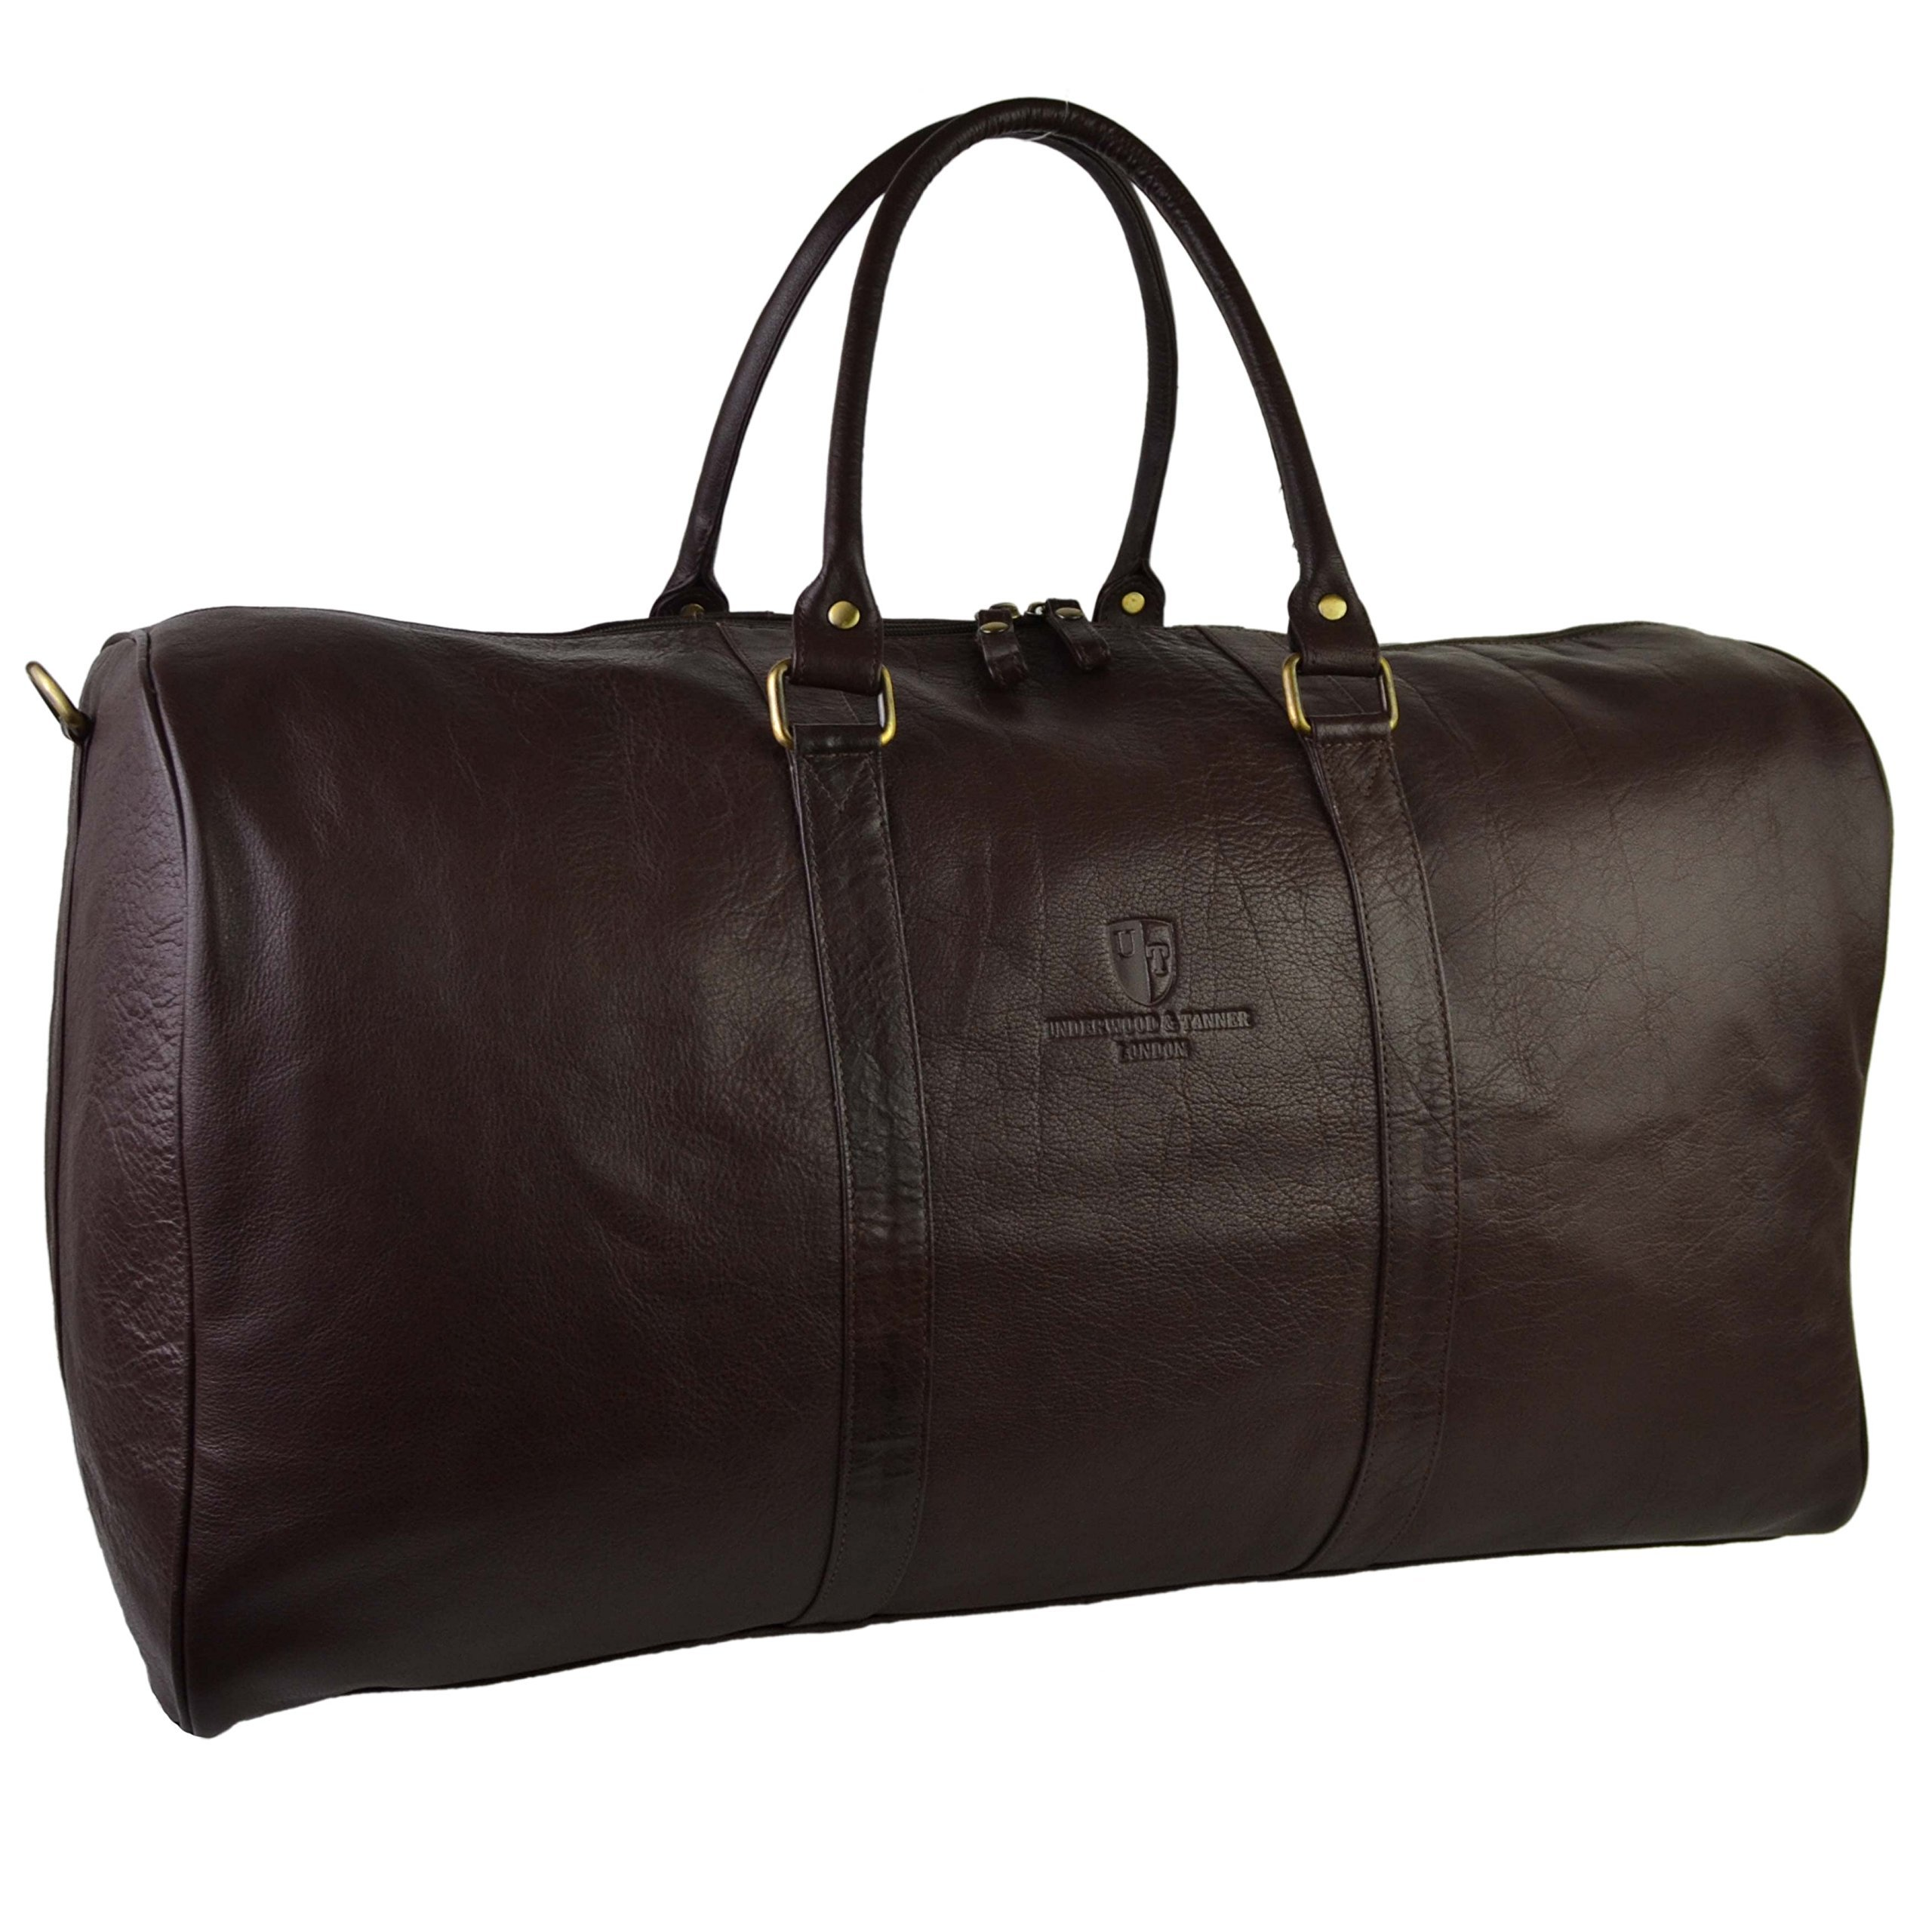 Underwood & Tanner London Women's Leather Holdall N/A Brown